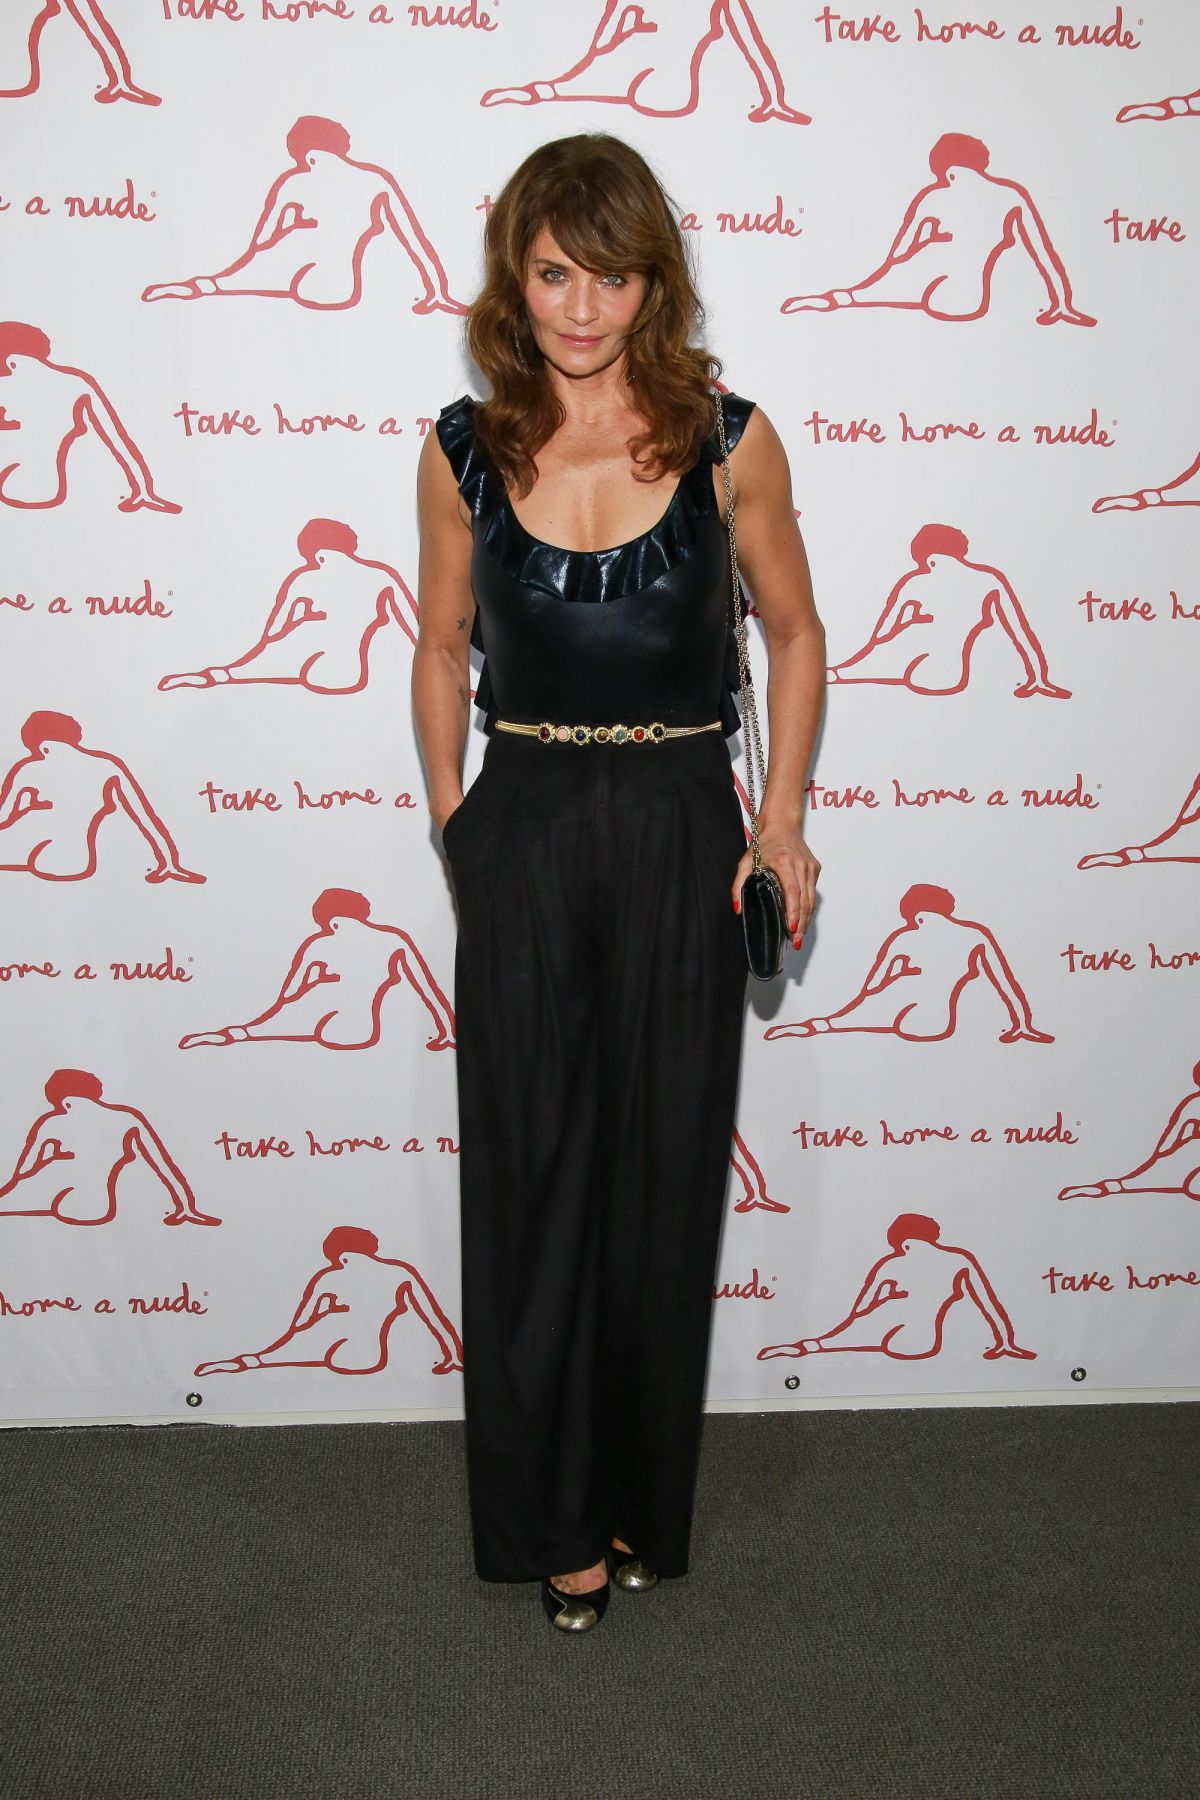 HELENA CHRISTENSEN at Take Home a Nude Annual Auction and